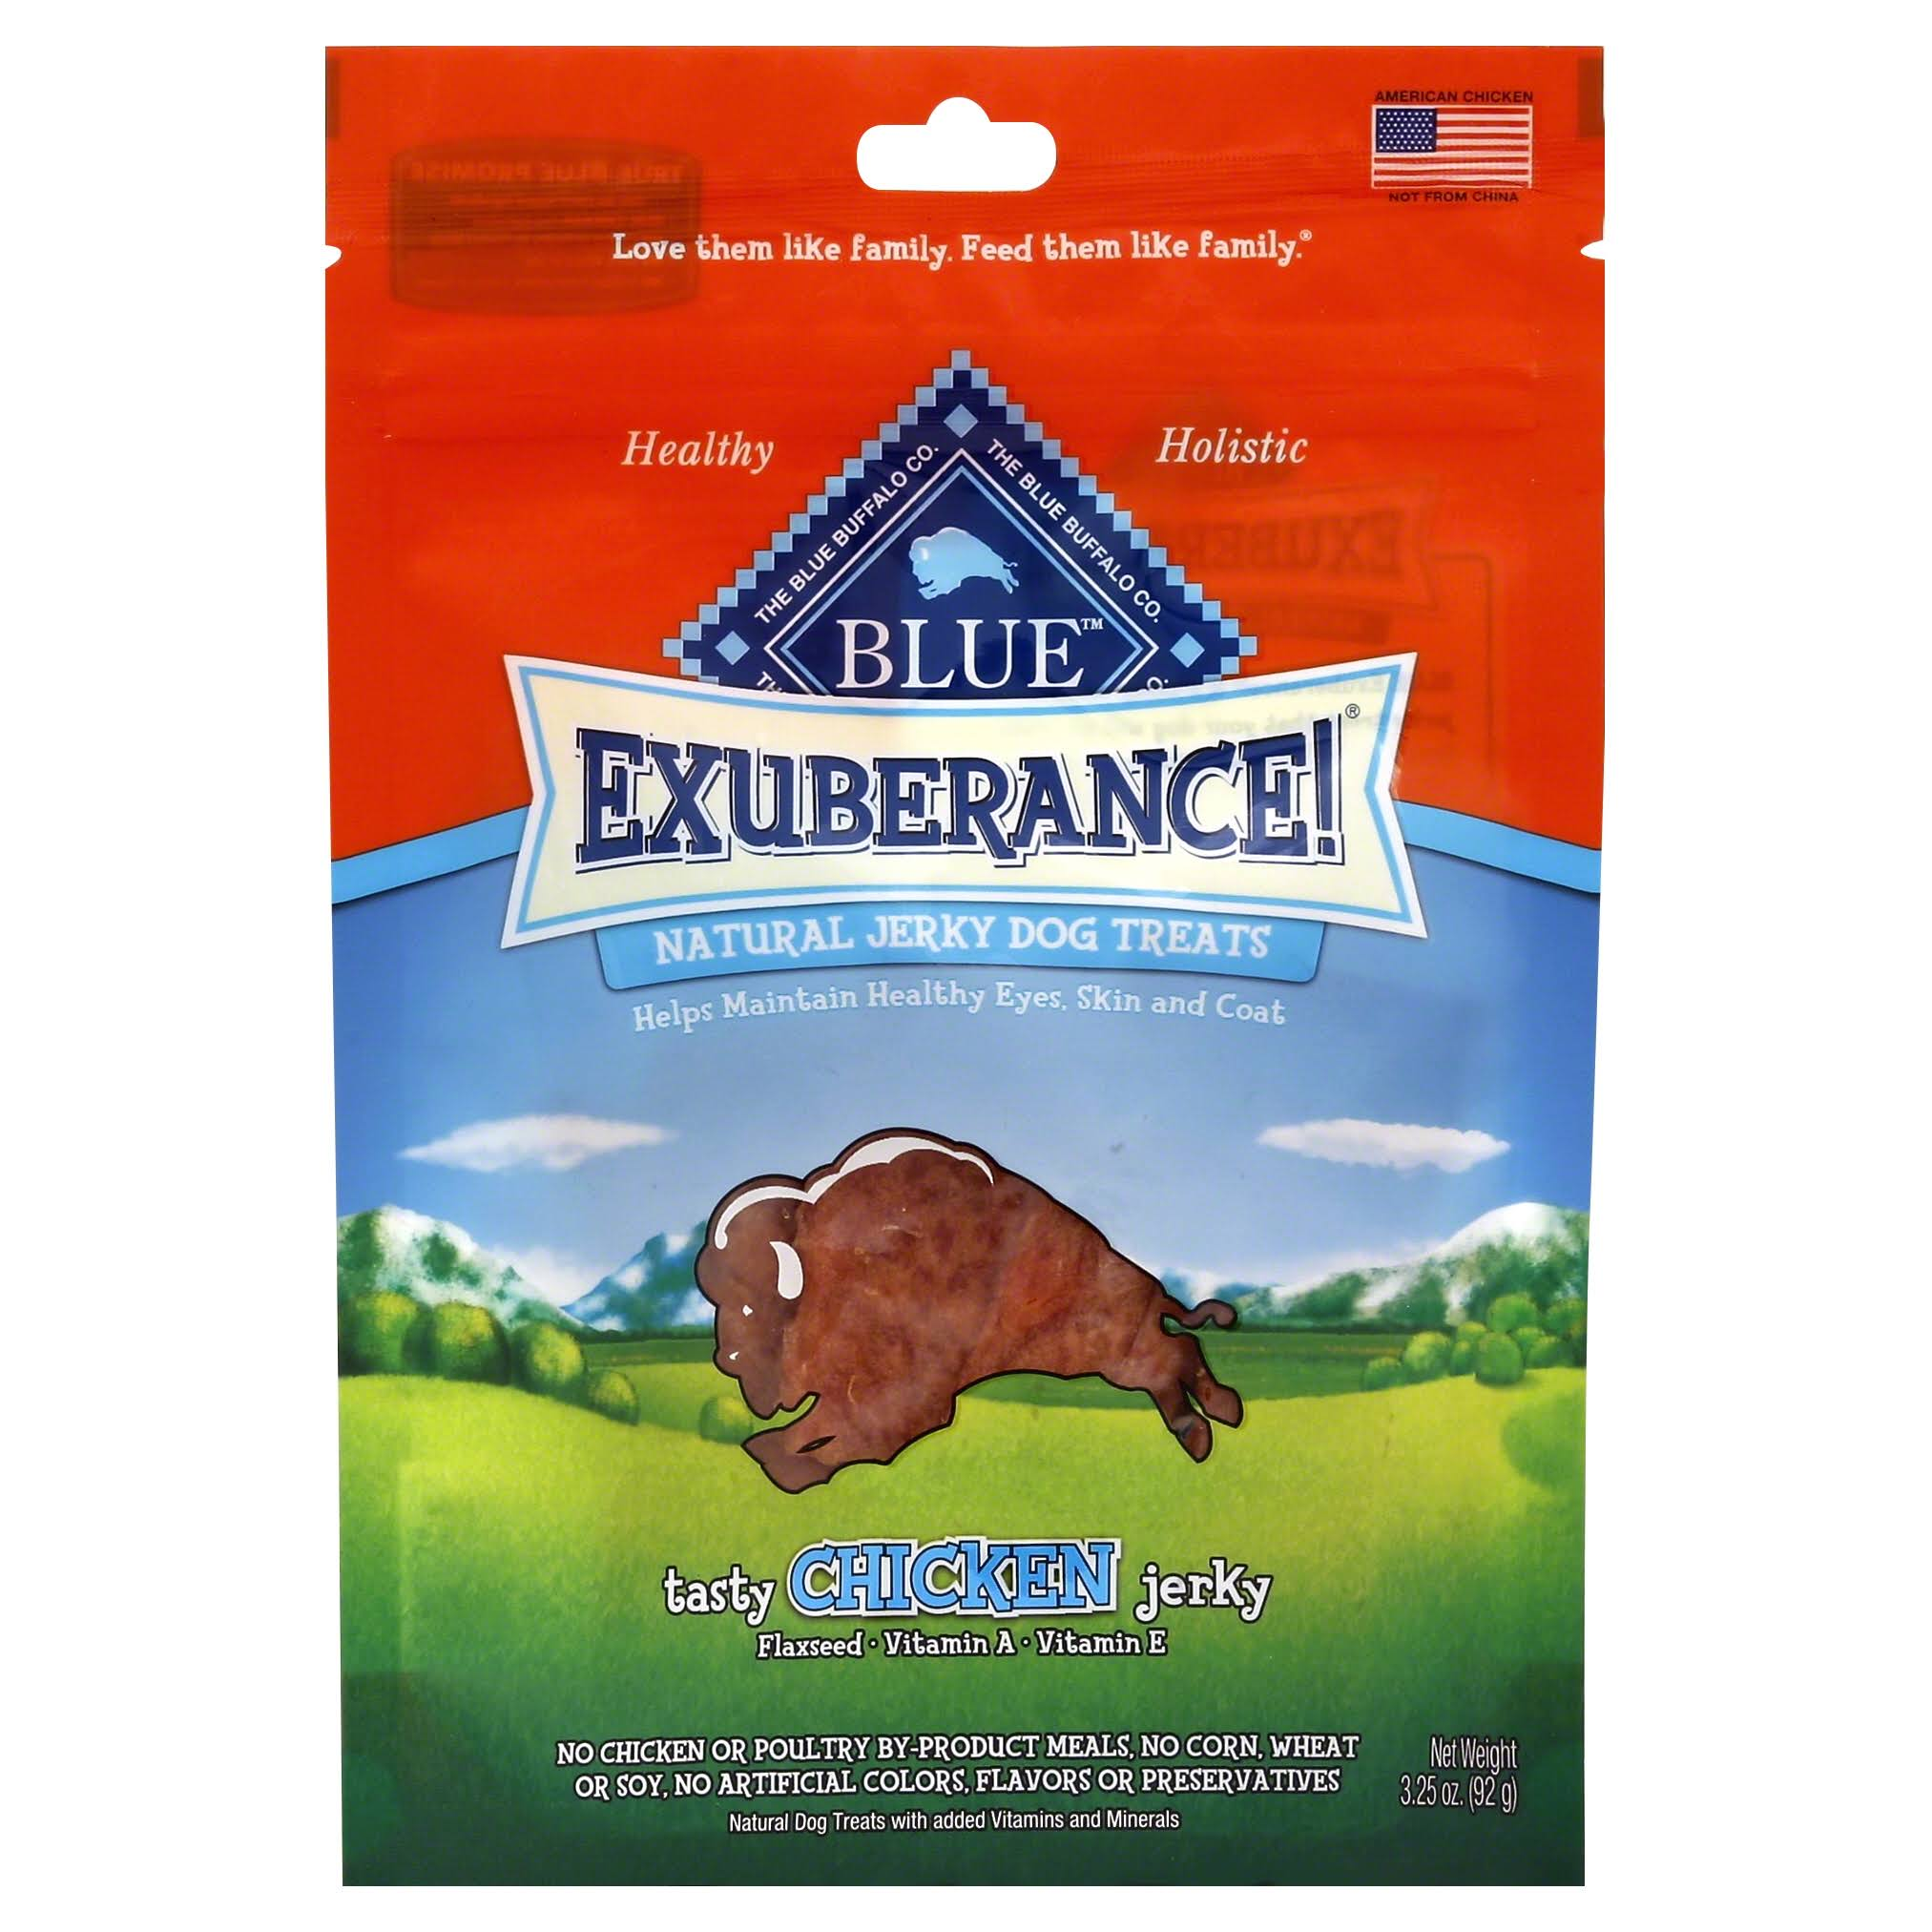 Blue Buffalo Exuberance Natural Dog Treat - Tasty Chicken Jerky, 3.25oz